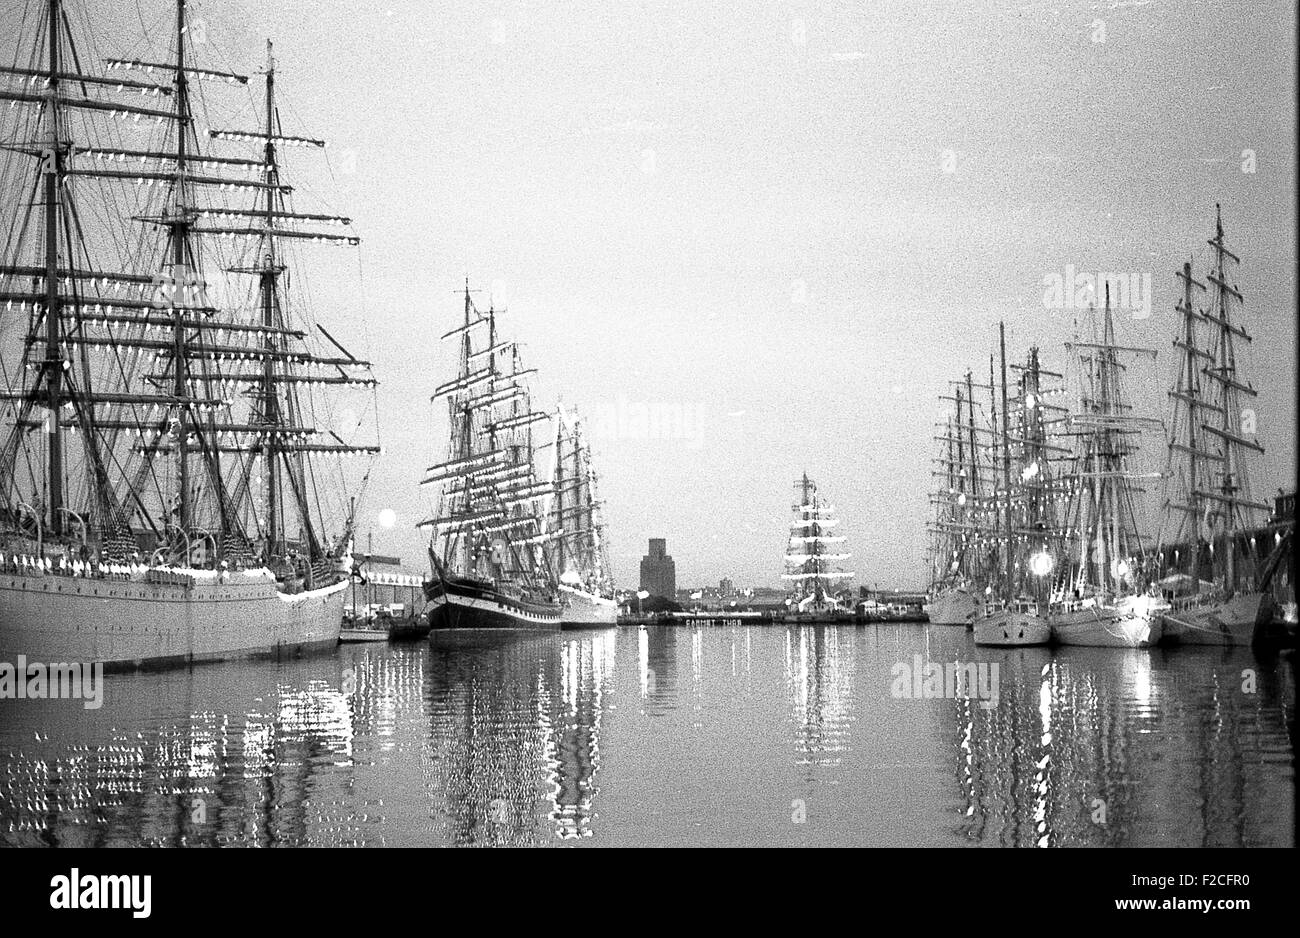 The Tall Ships in Liverpool & the Wirral in 1992 - Stock Image